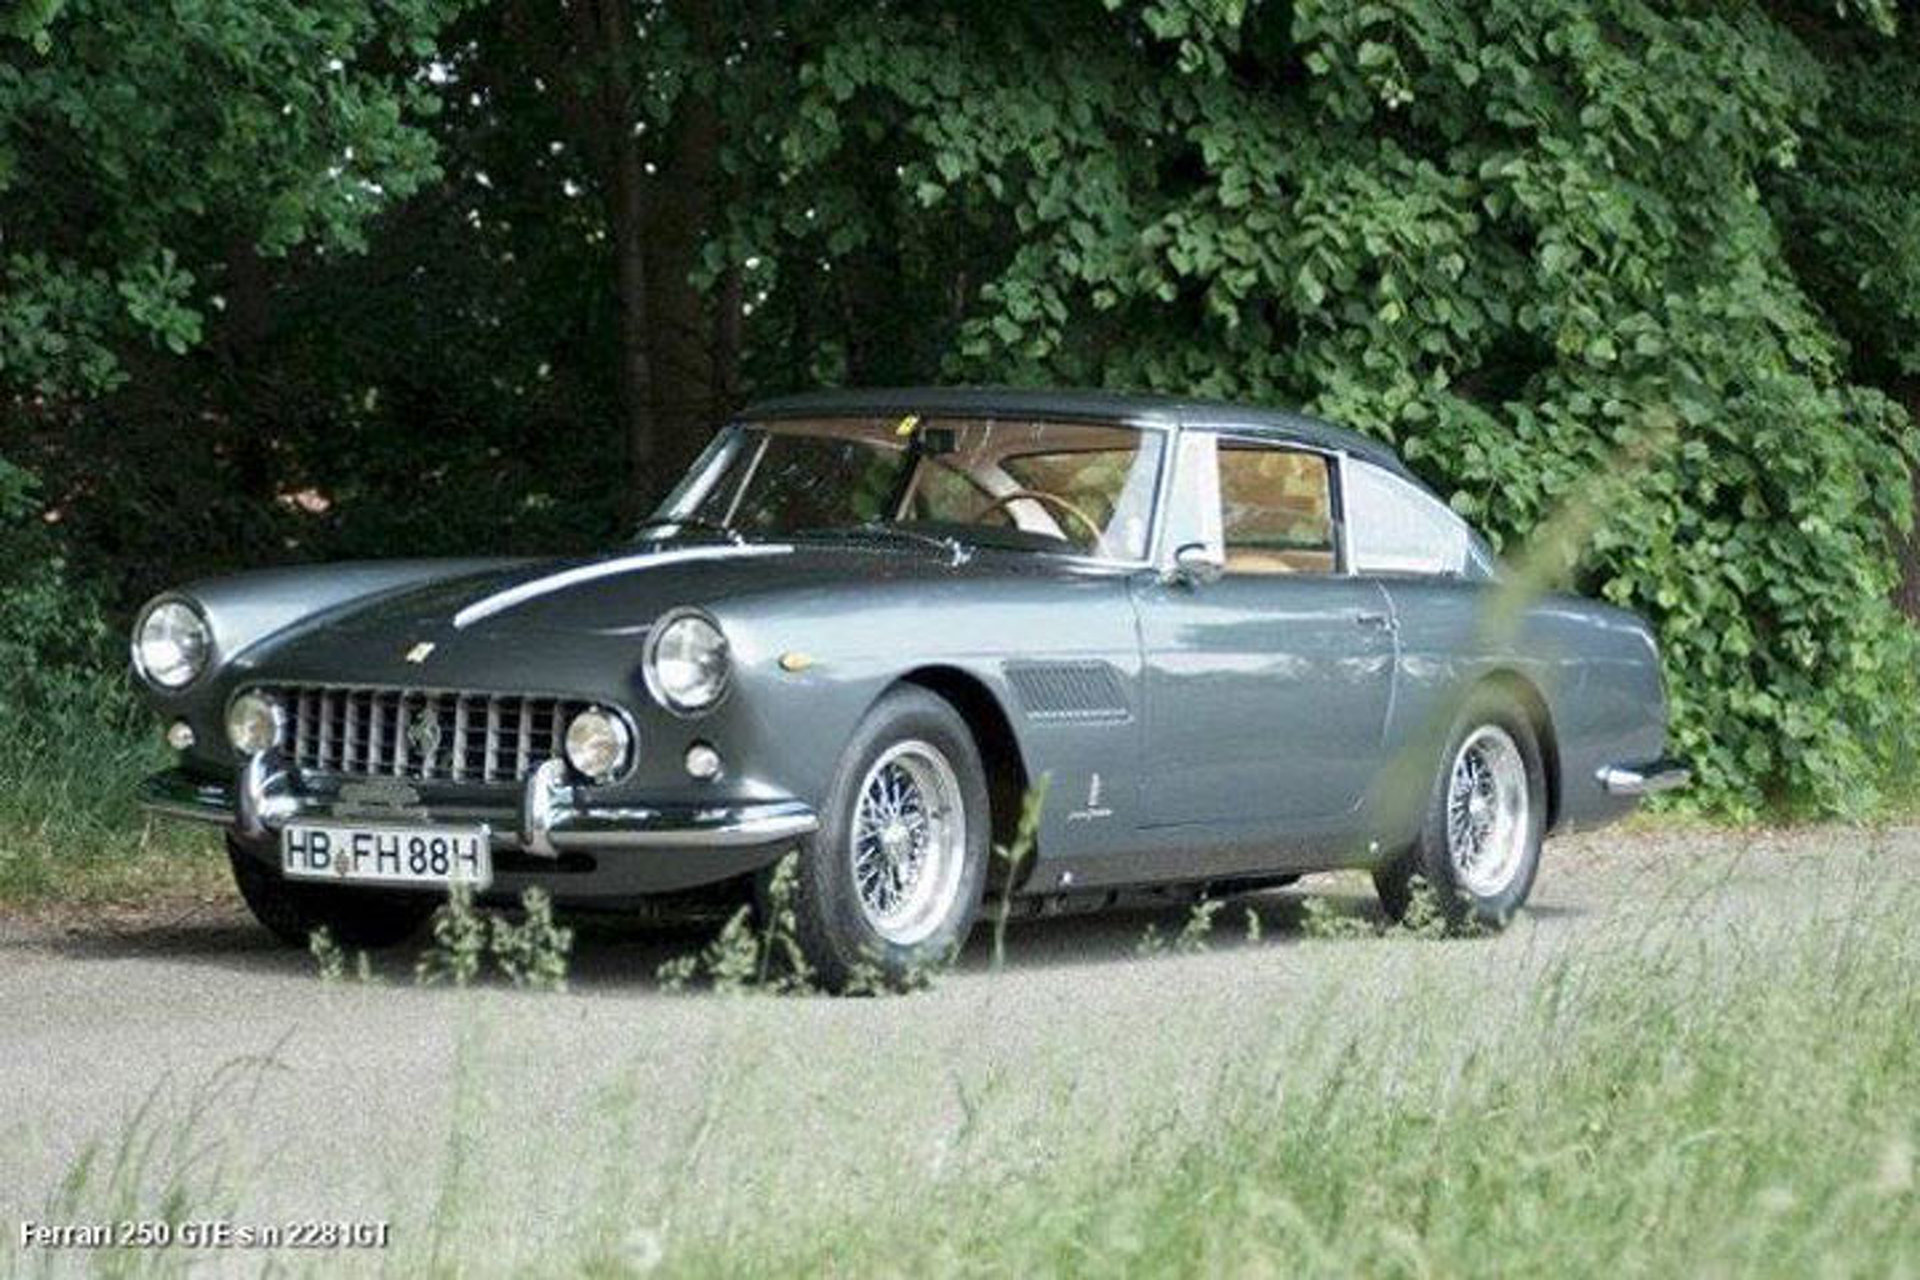 STOLEN! Help Find This Missing Ferrari 250 GTE